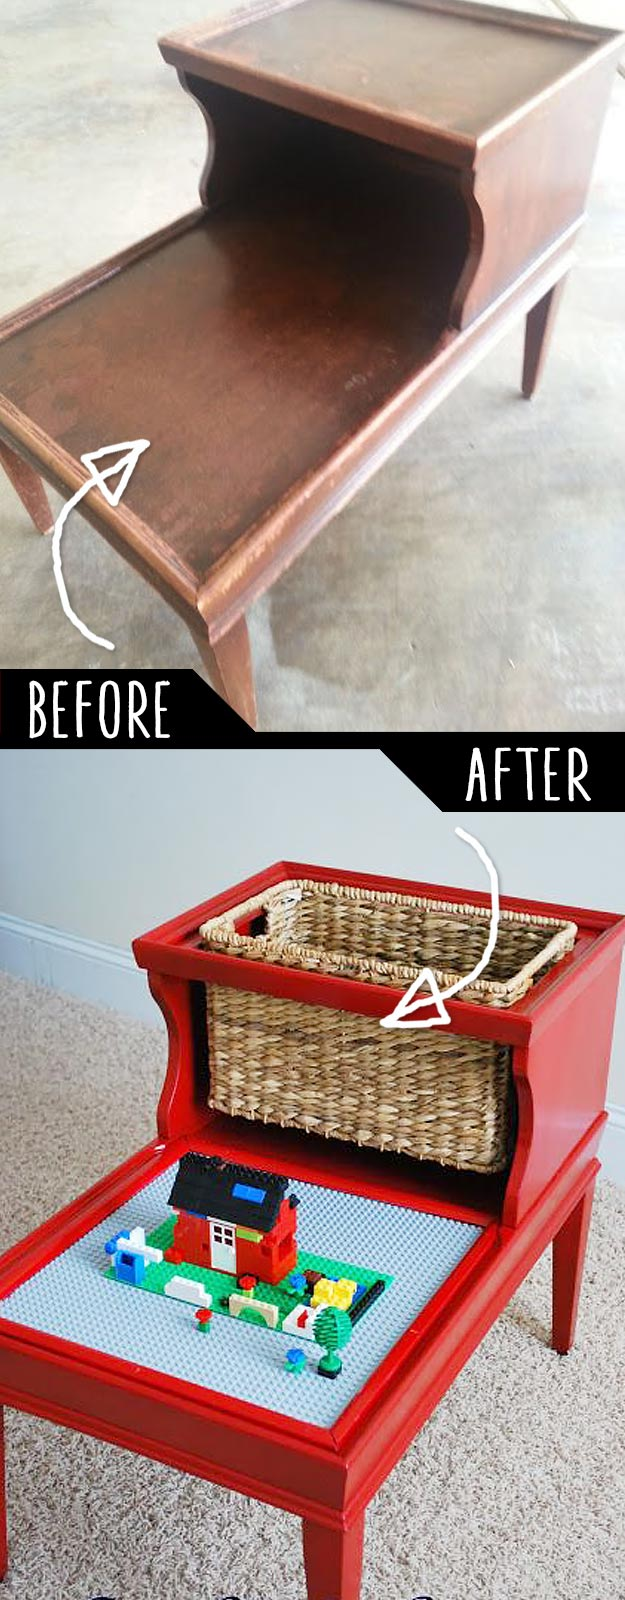 19 DIY Idea To Play With Old Furniture 16